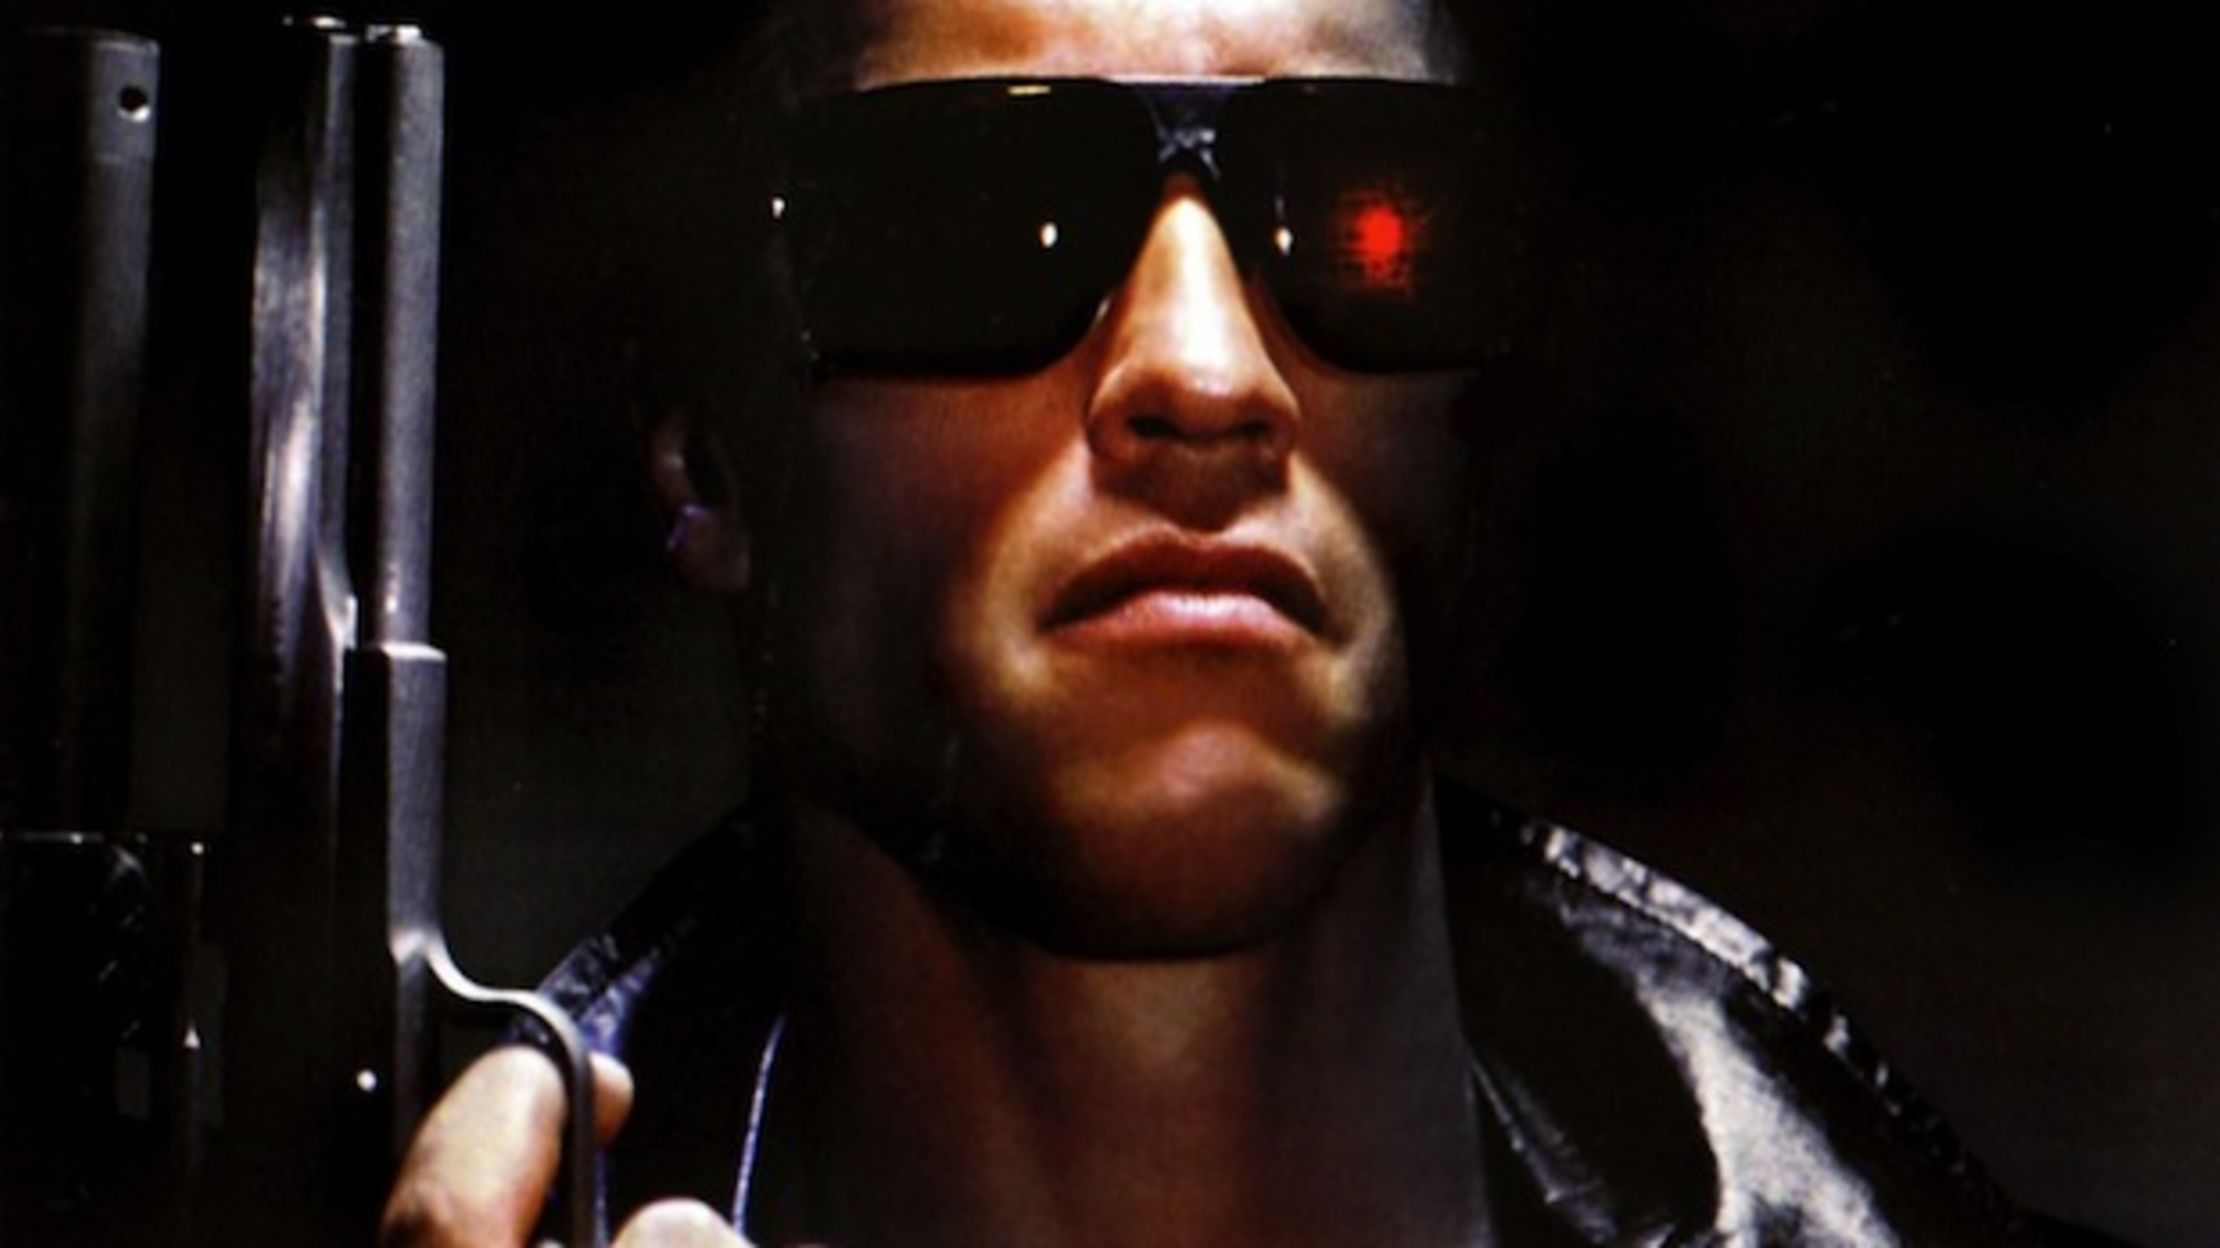 16 Things You Might Not Know About 'The Terminator' | Mental Floss